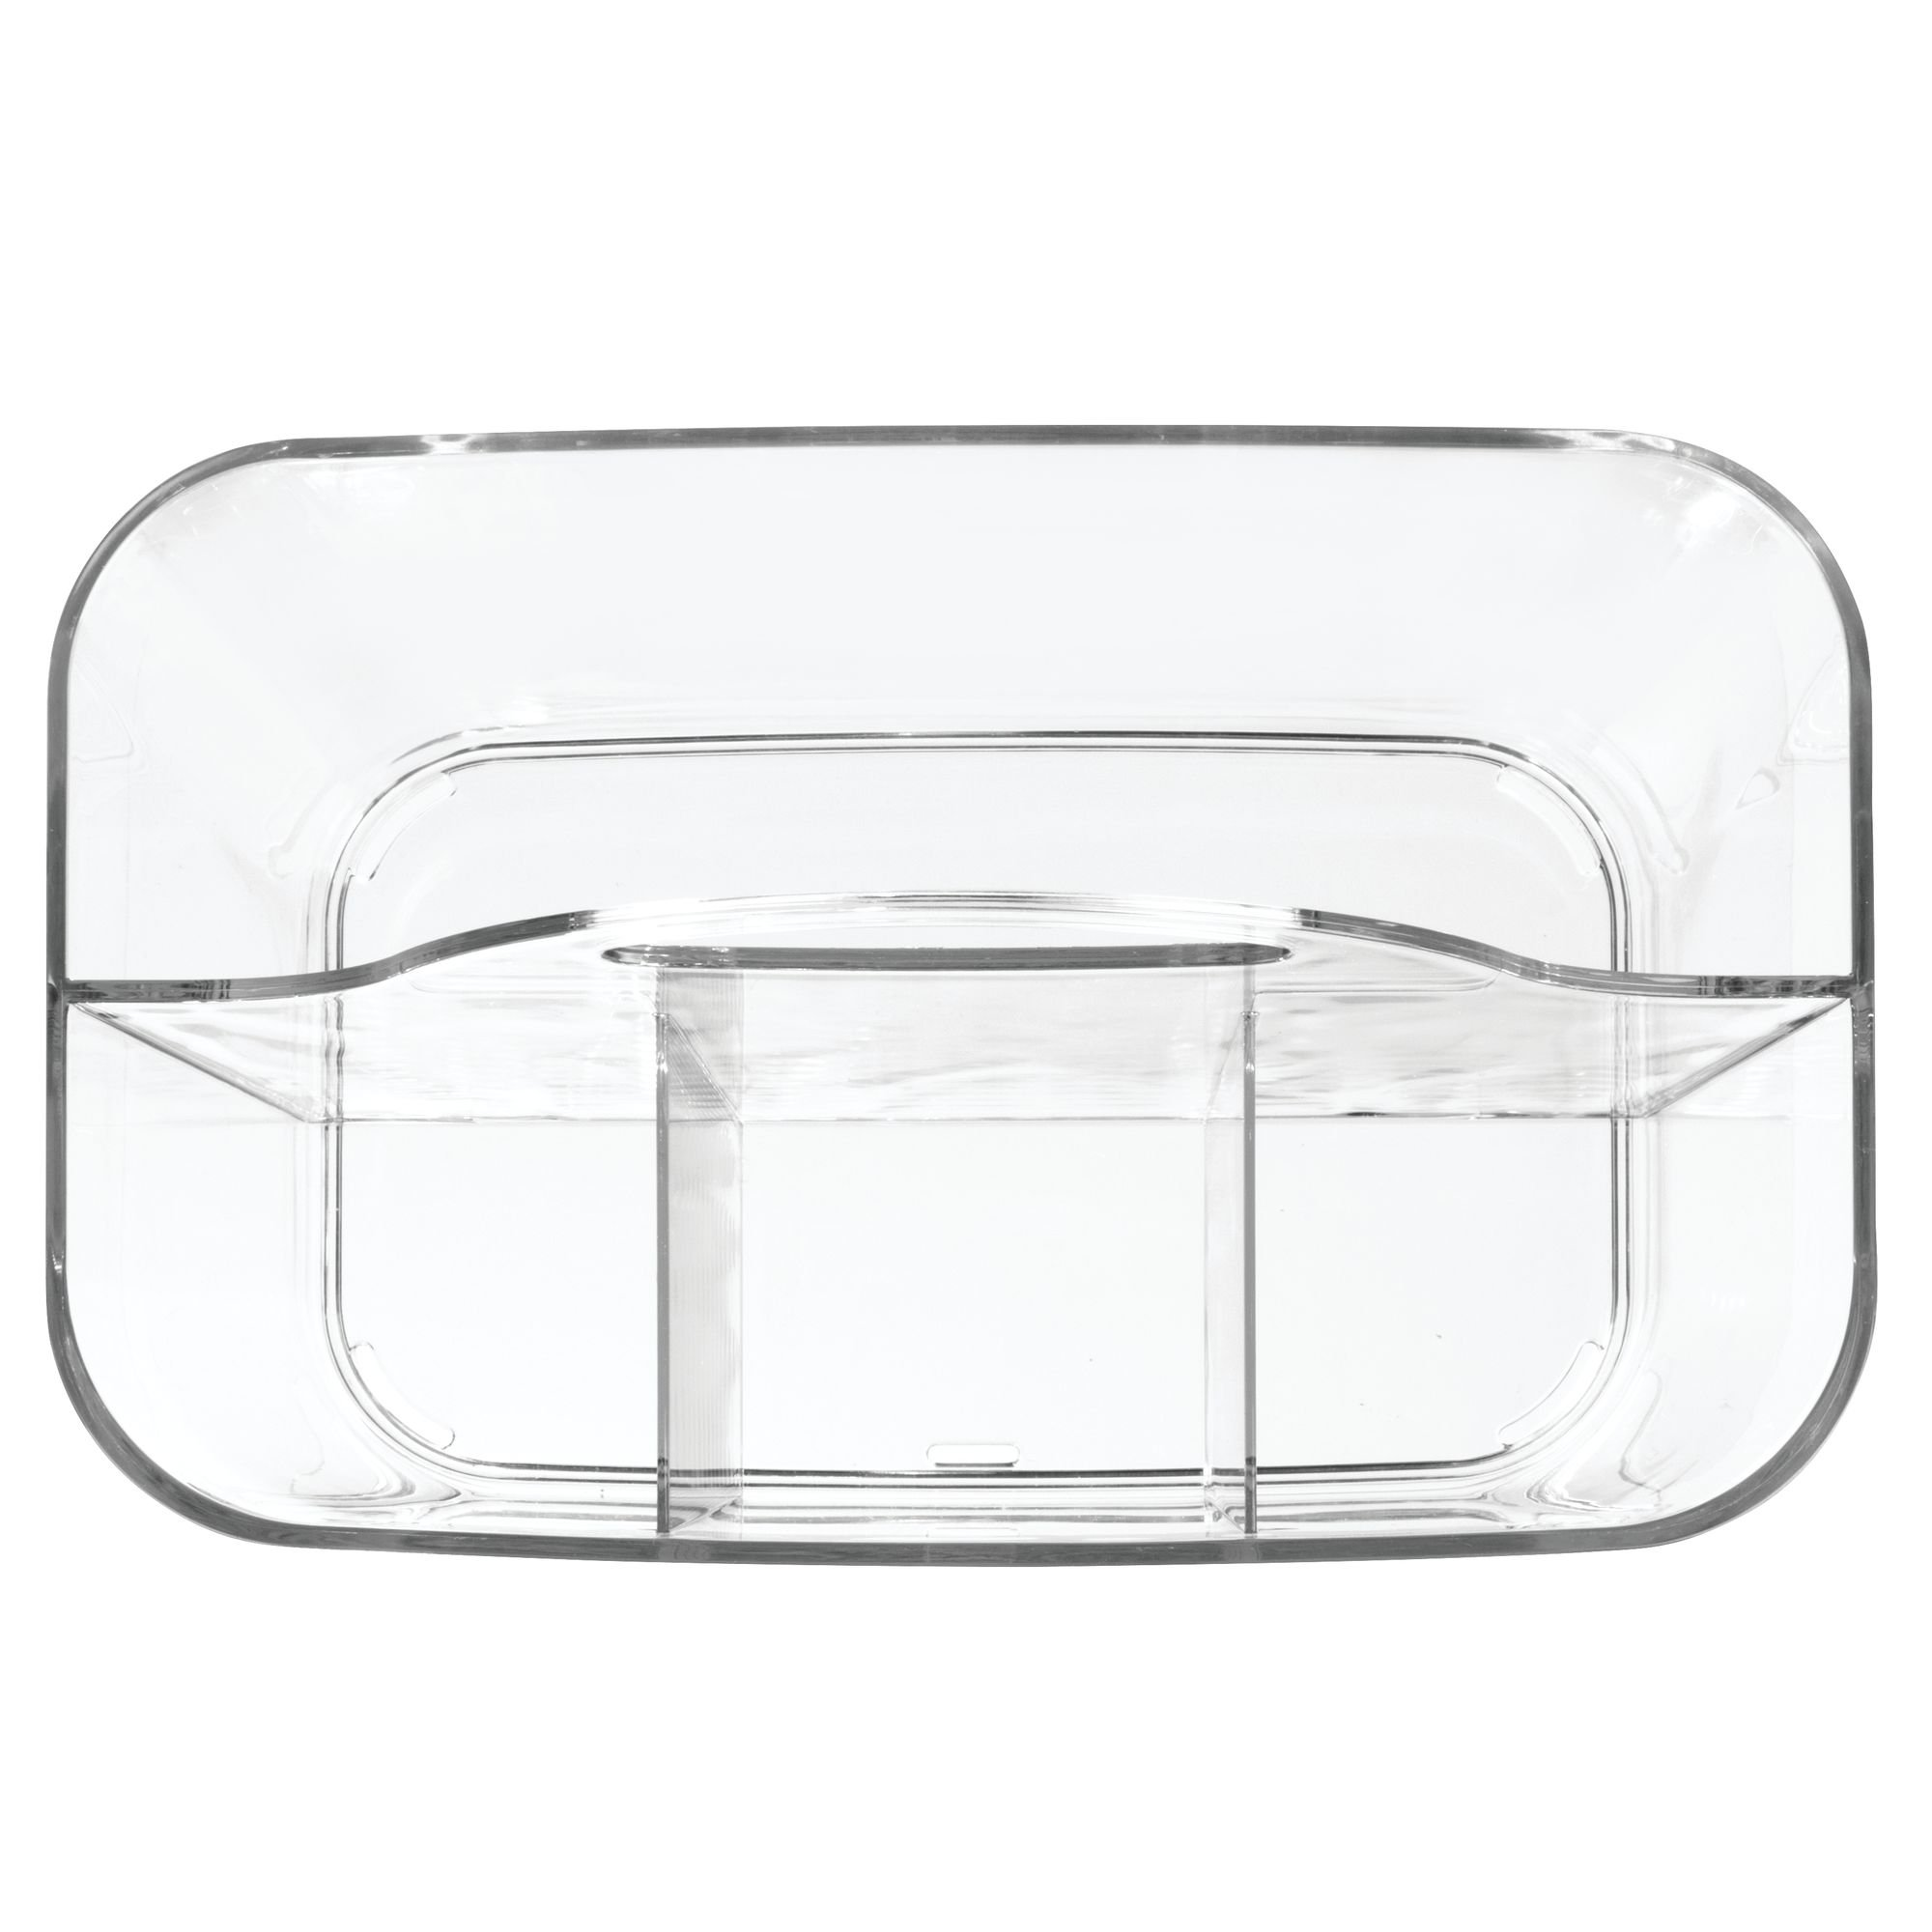 InterDesign Clarity Cutlery Flatware Caddy, Silverware, Utensil, and Napkin Holder - Clear by InterDesign (Image #6)